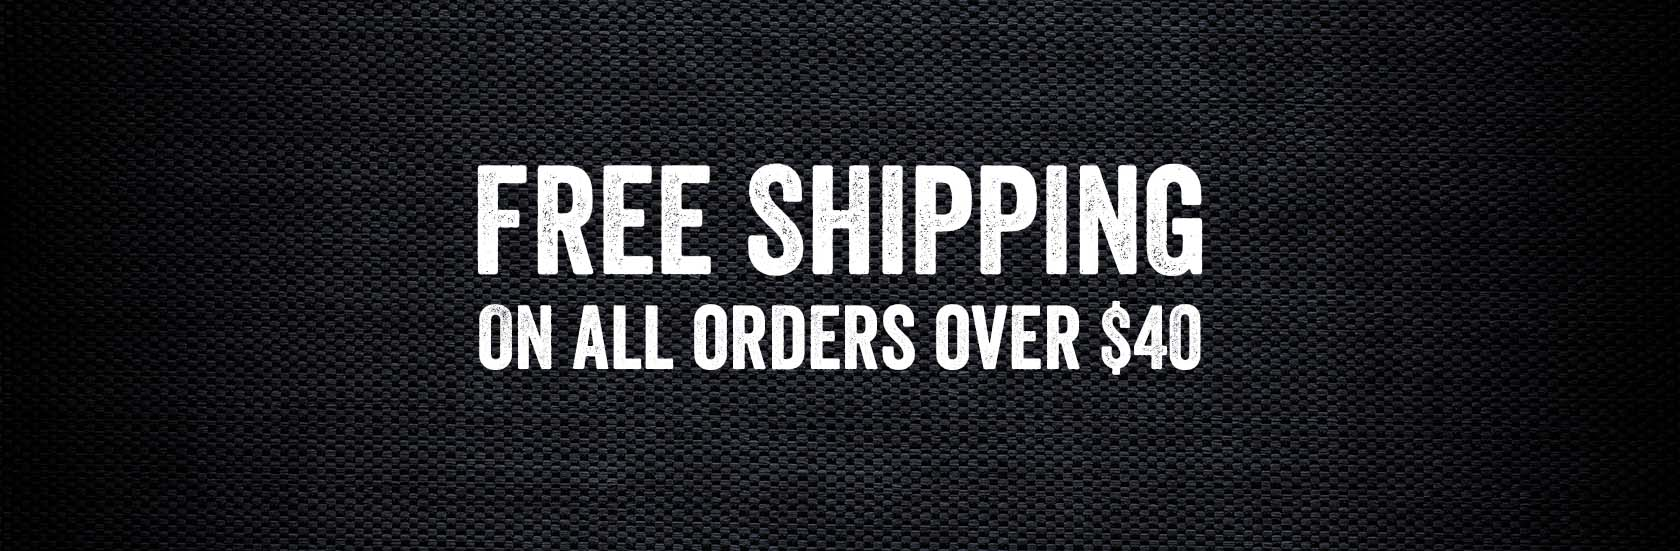 Free Shipping at ZigZag Wags